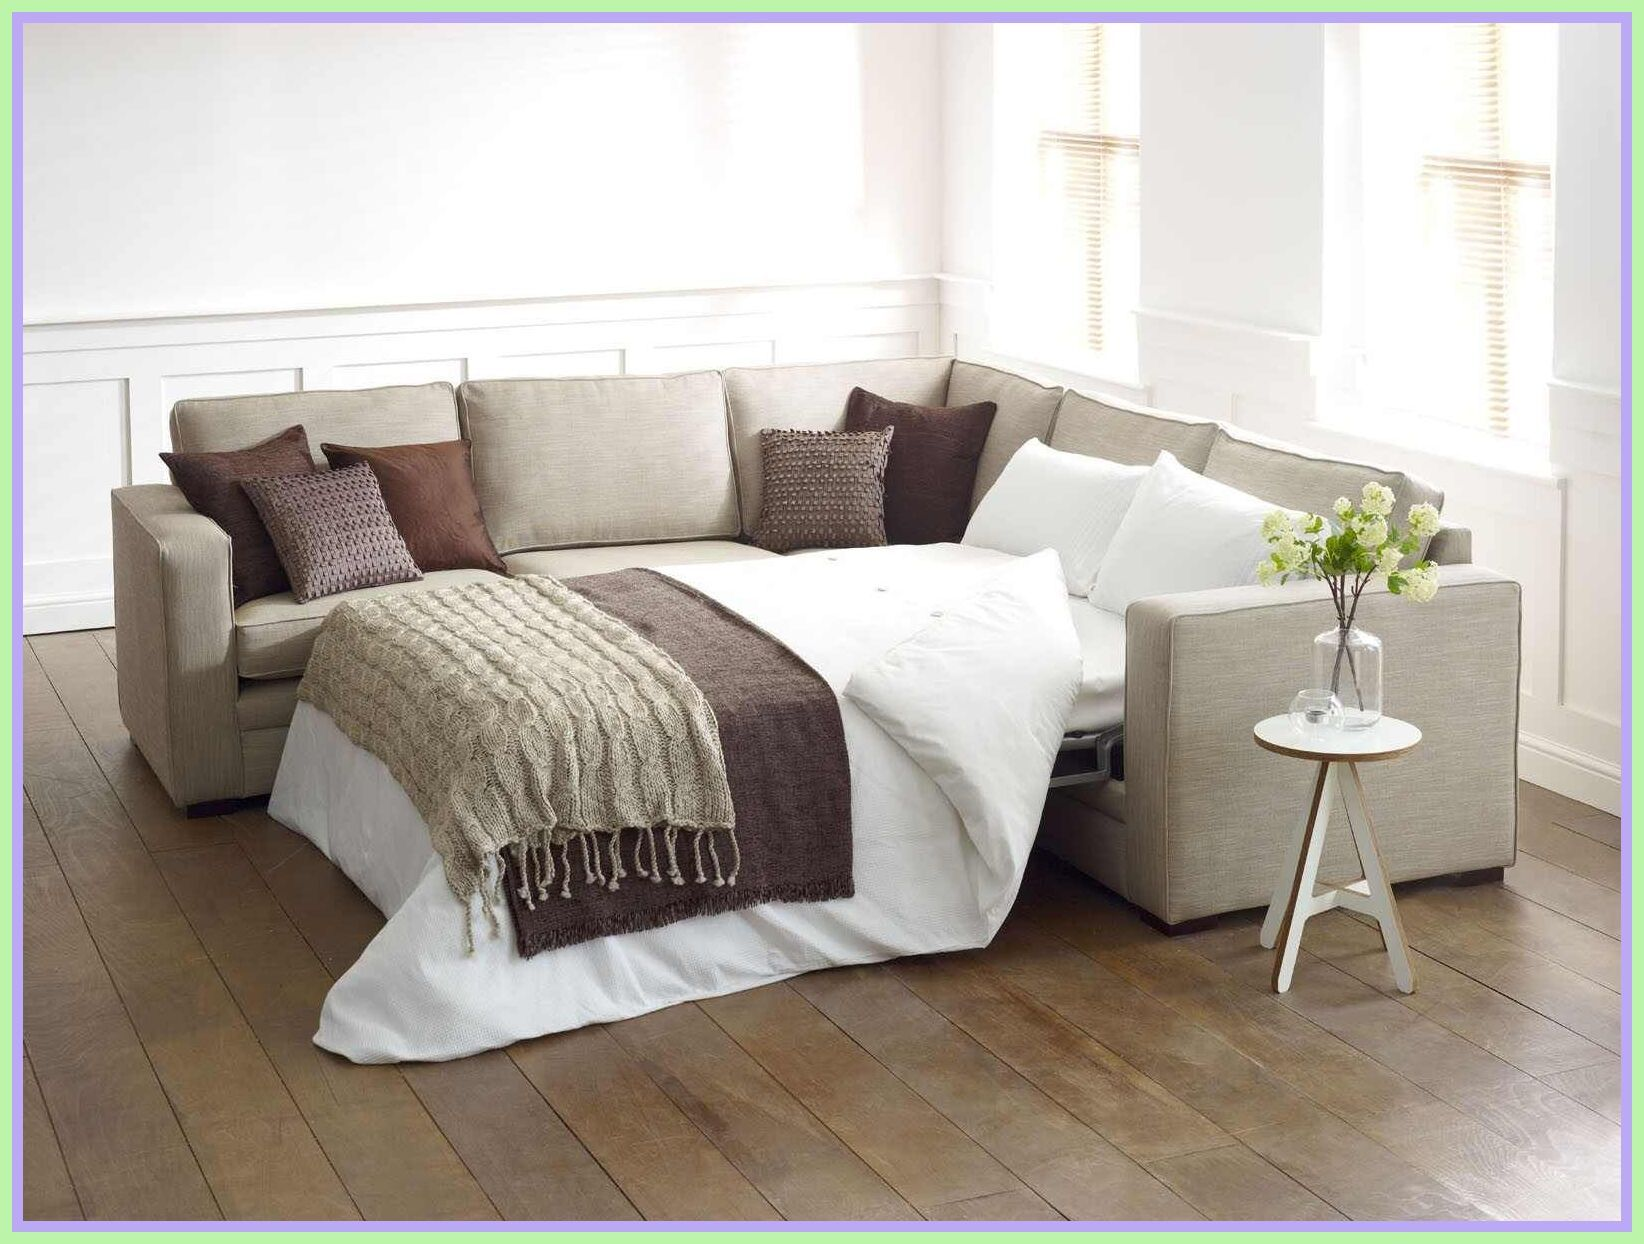 130 Reference Of Sofa Bed L Shape Argos In 2020 Sofa Bed Design L Shaped Sofa Bed Small Sofa